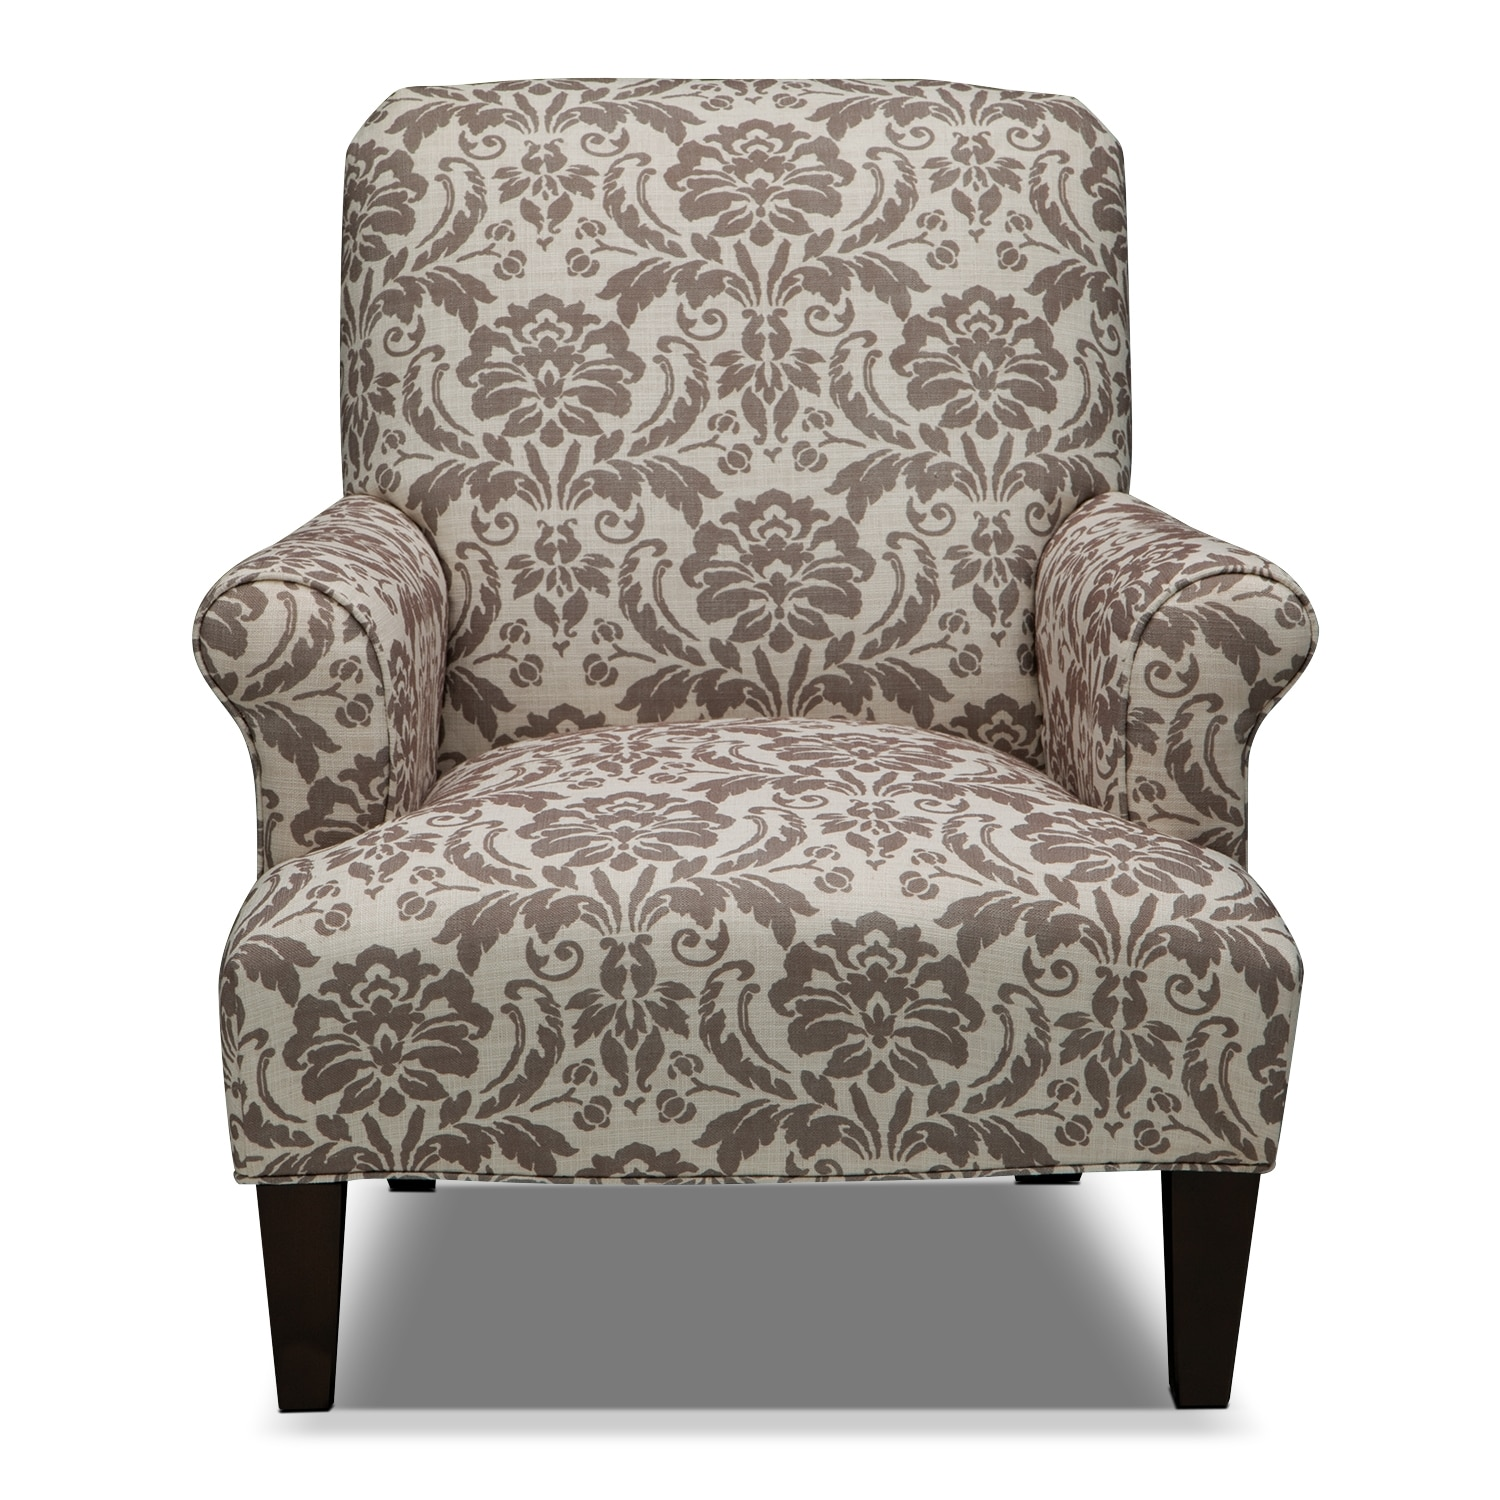 Accent Chair Made By American Furniture: Candice Accent Chair - Gray And Cream